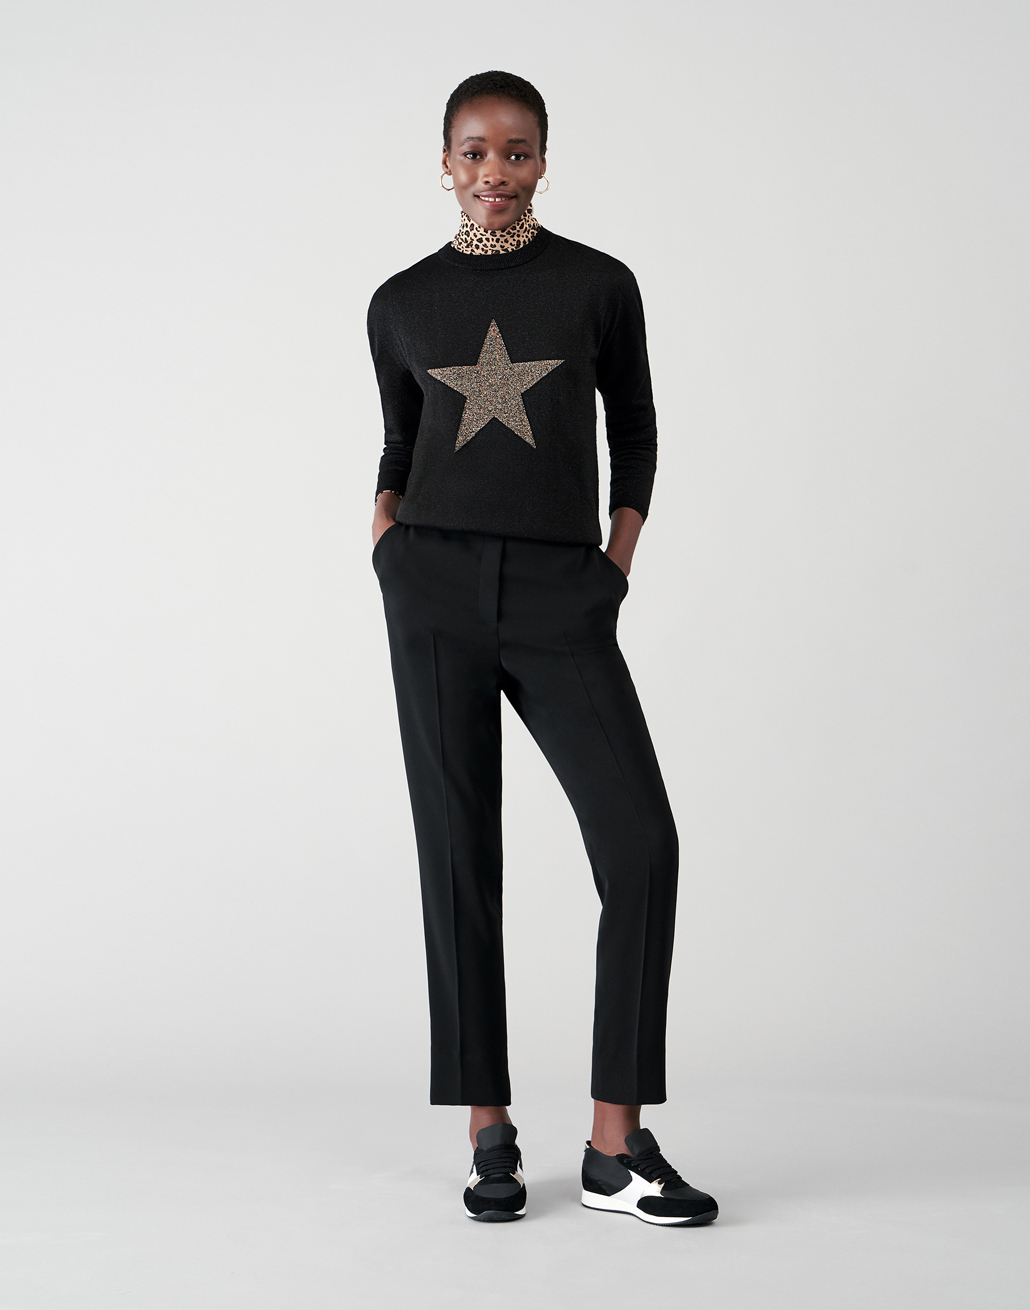 Black Jumper with Gold Sparkle Star